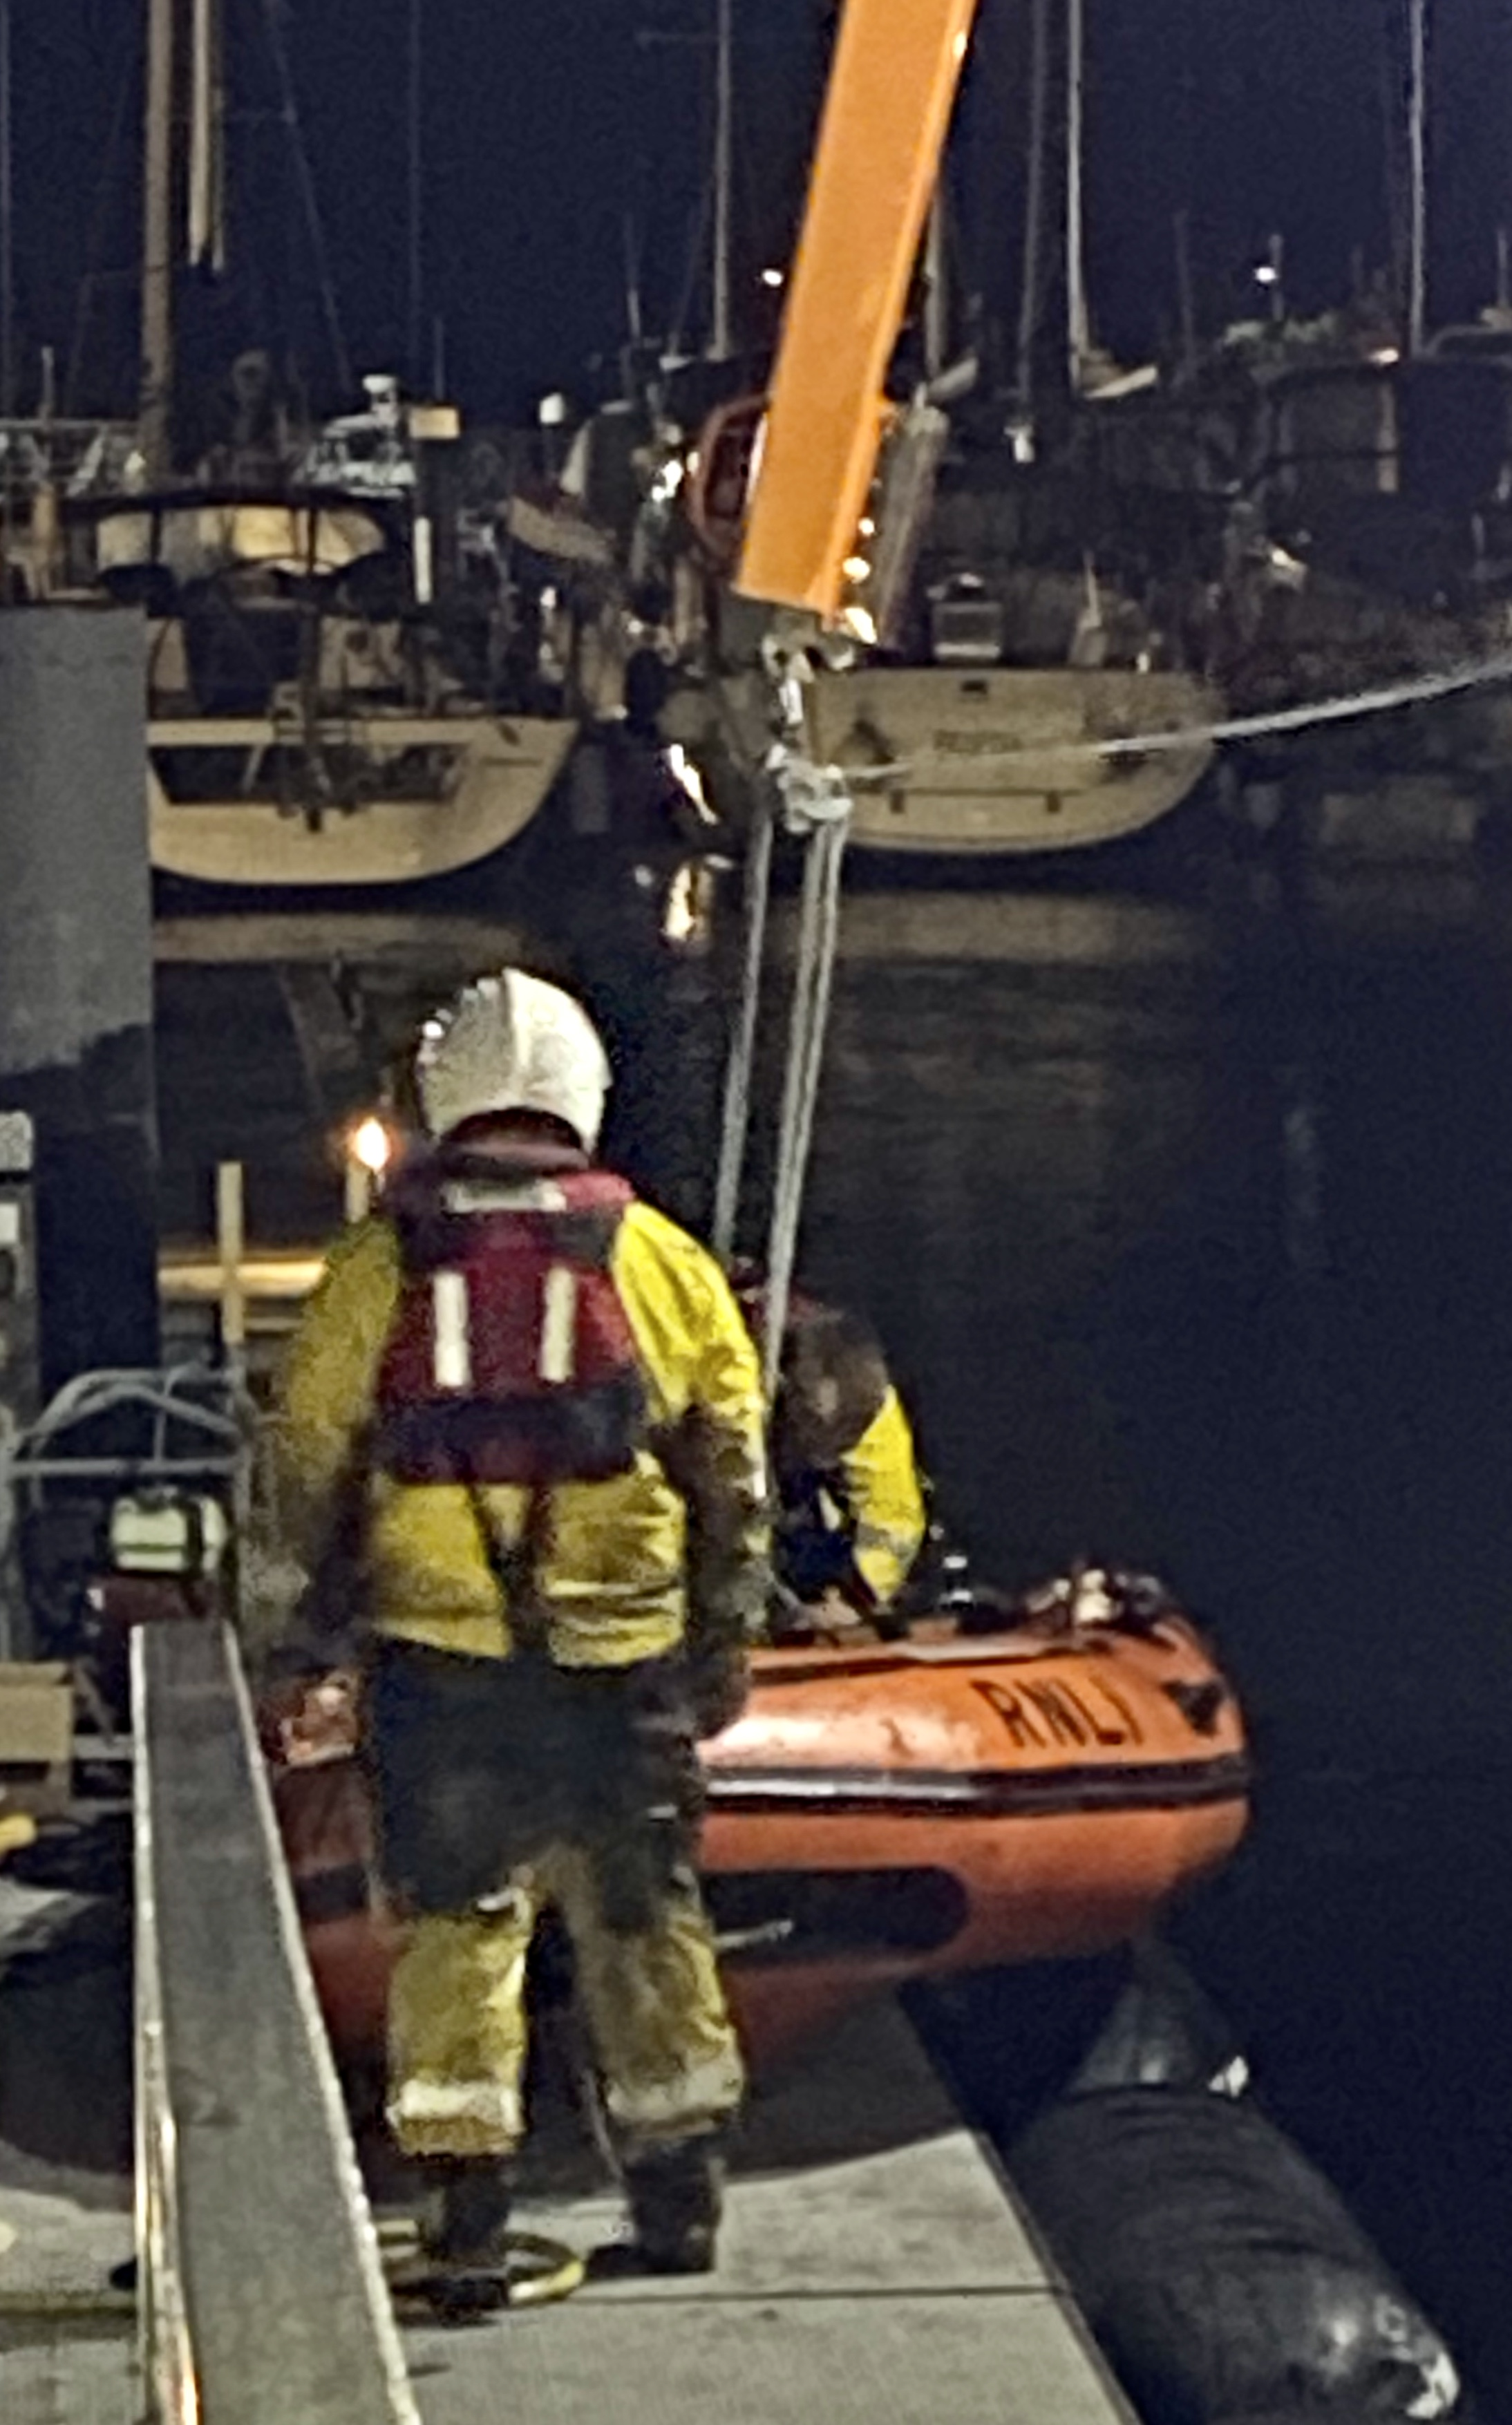 Photo of the Yarmouth RNLI crew preparing the 'Y' boat for service.